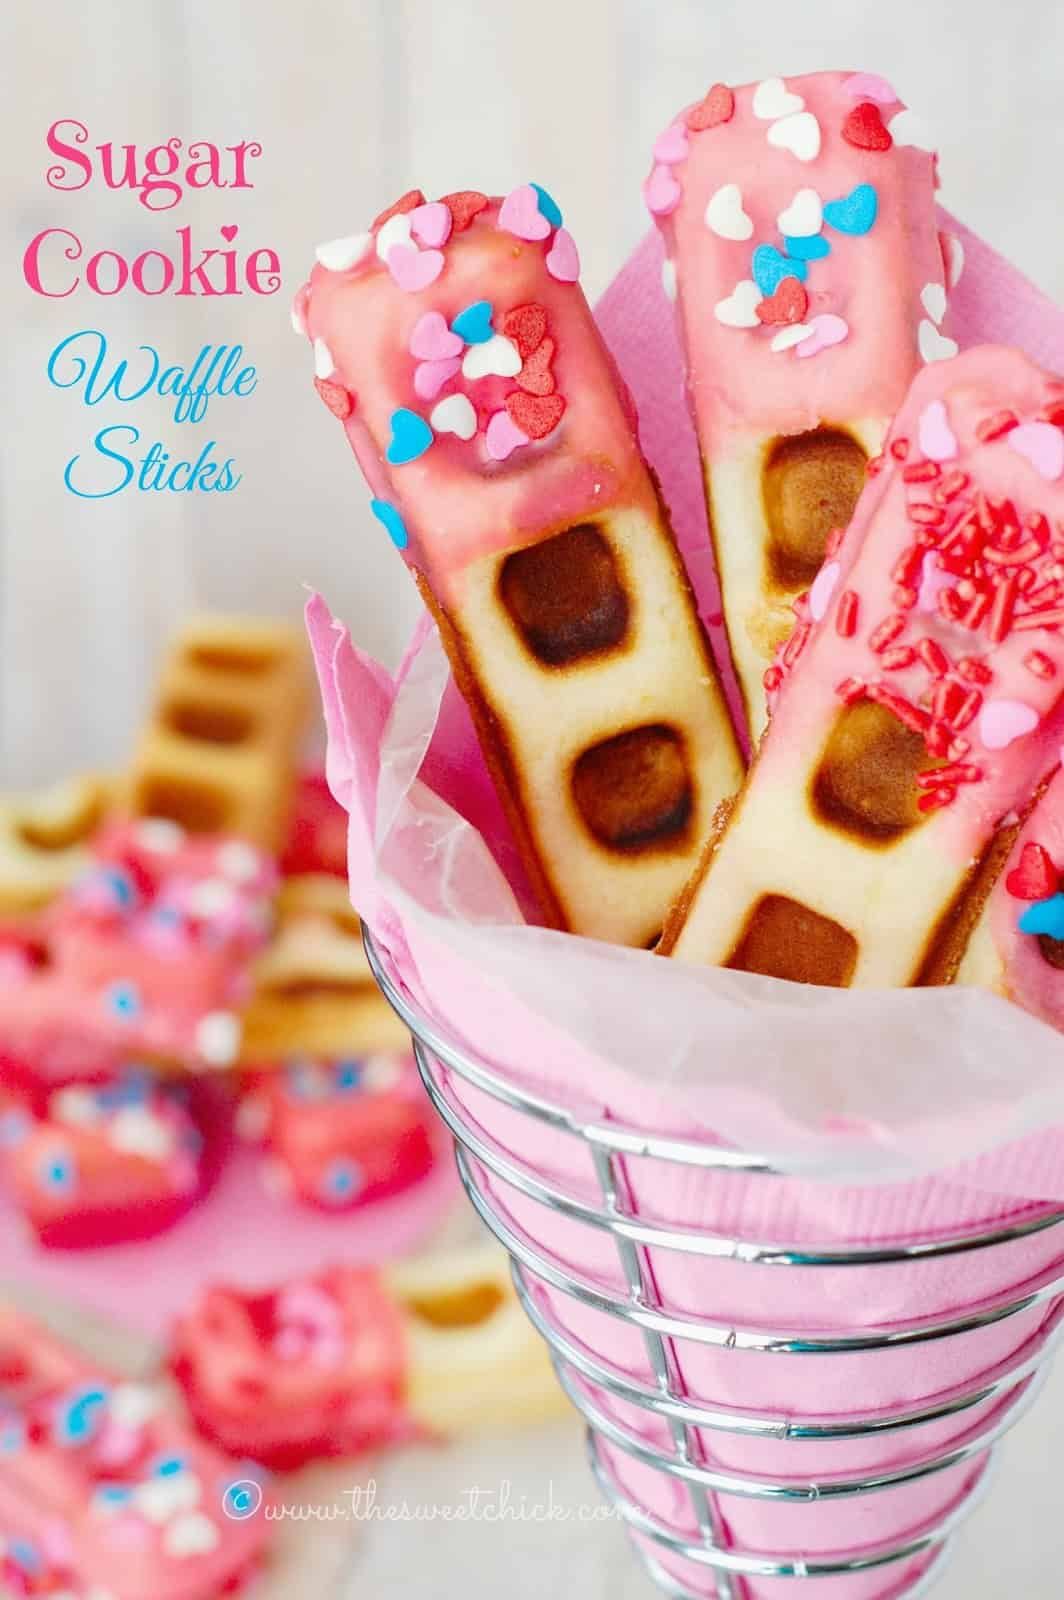 Sugar-Cookie-Waffle-Sticks - The Sweet Chick